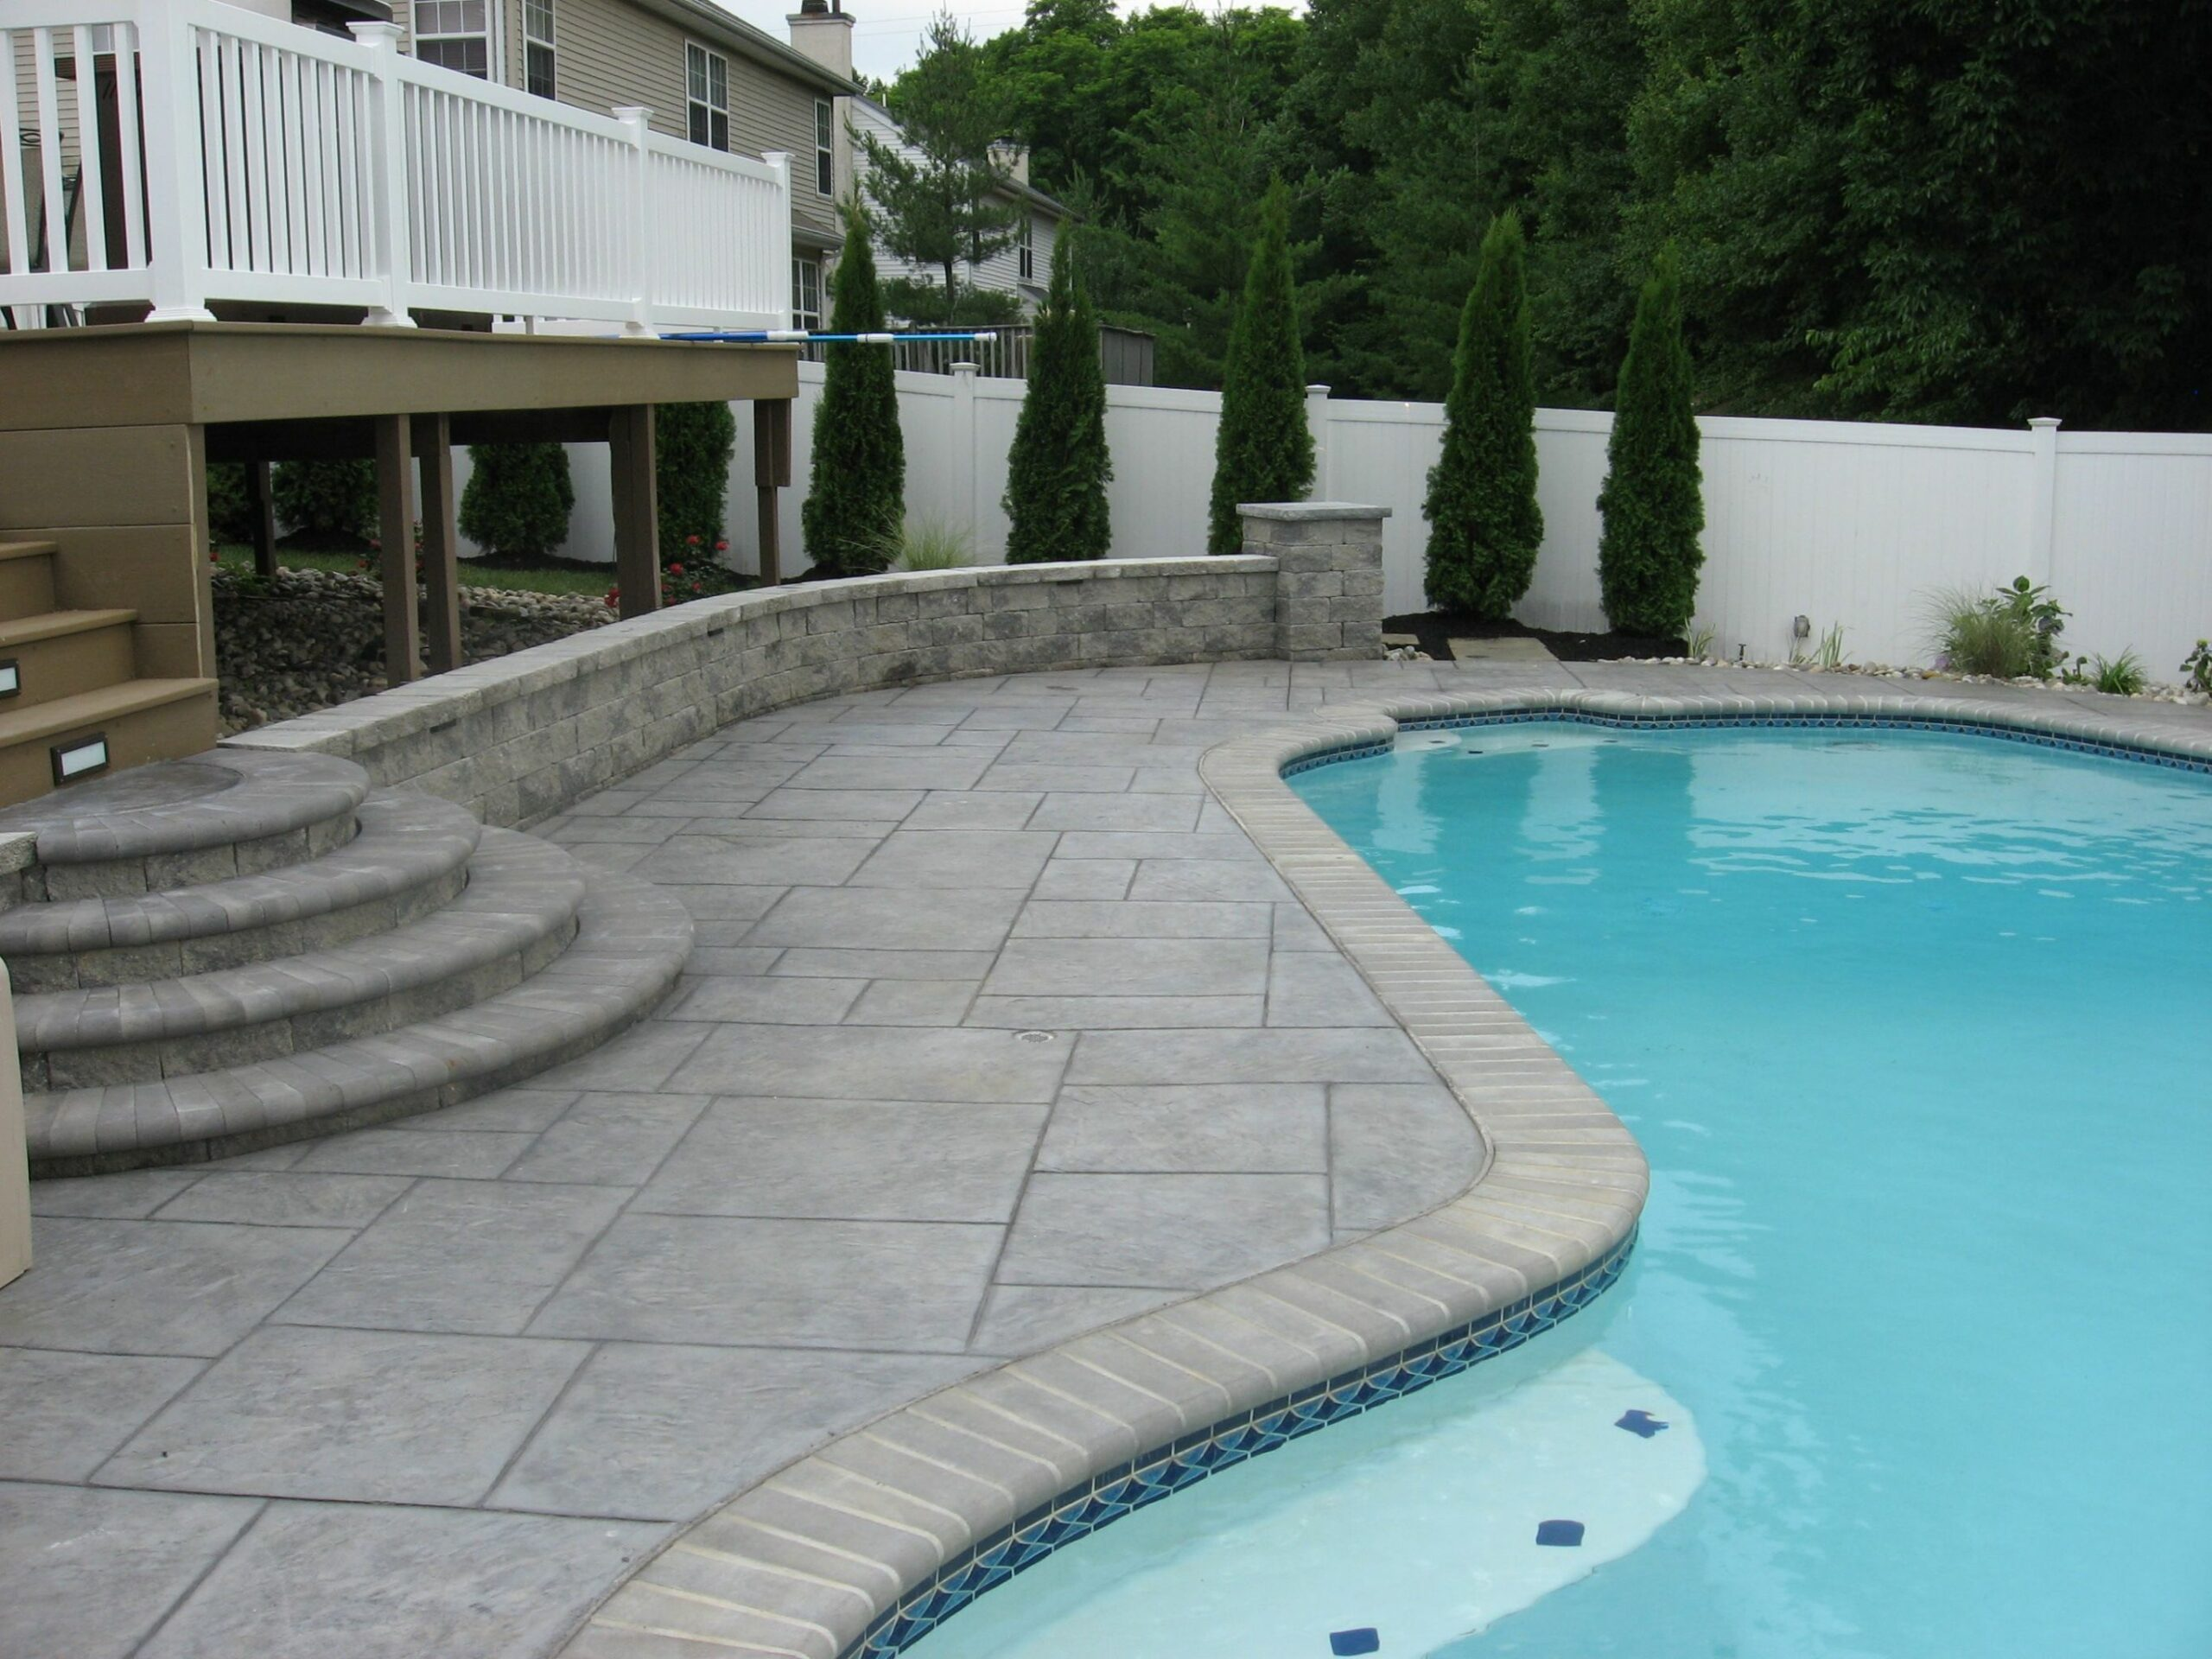 stamped concrete patios around a pool | Pattern Concrete for Pools ..